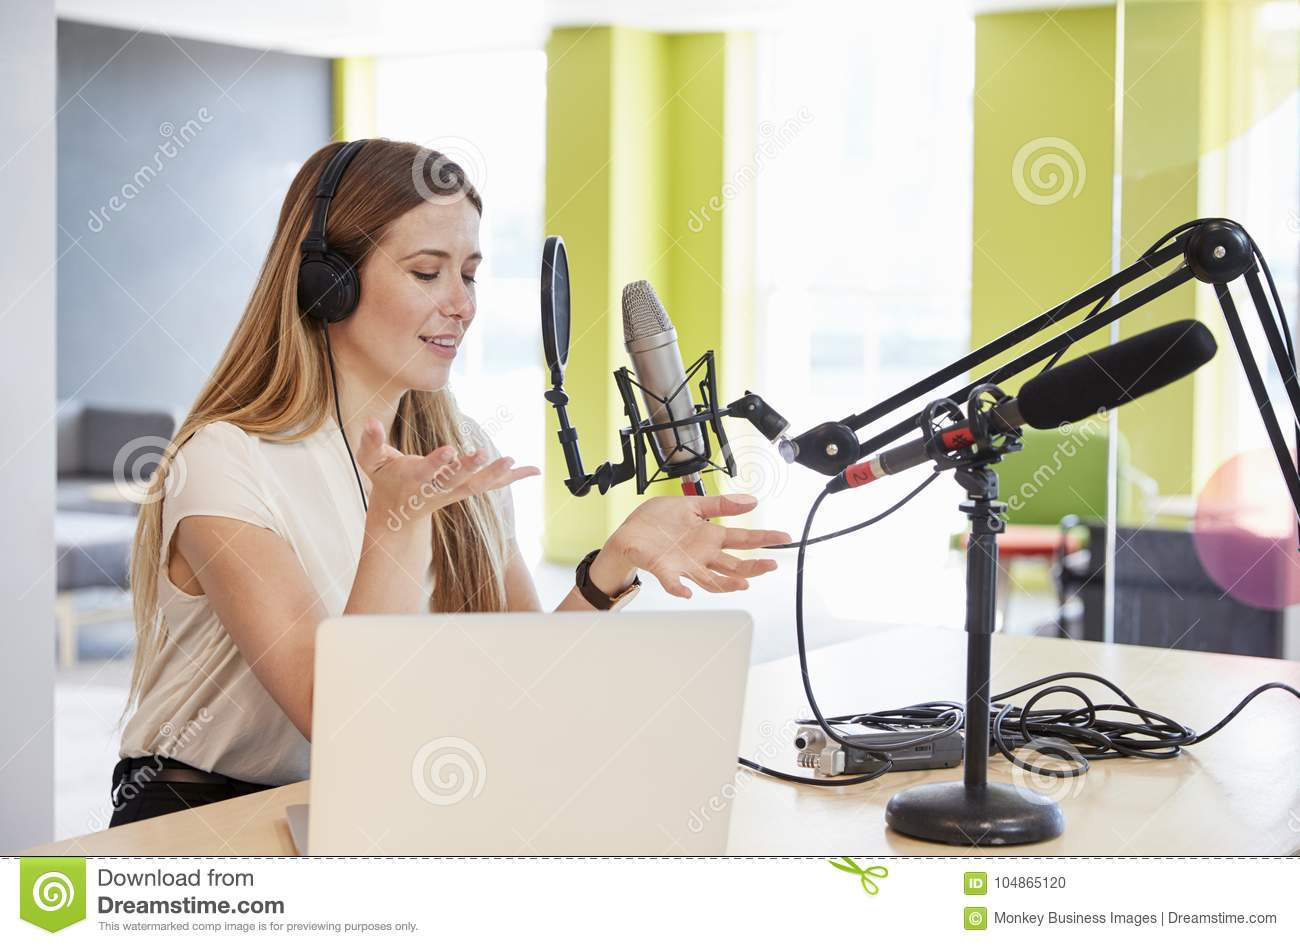 Young woman broadcasting in a studio gesturing, close up